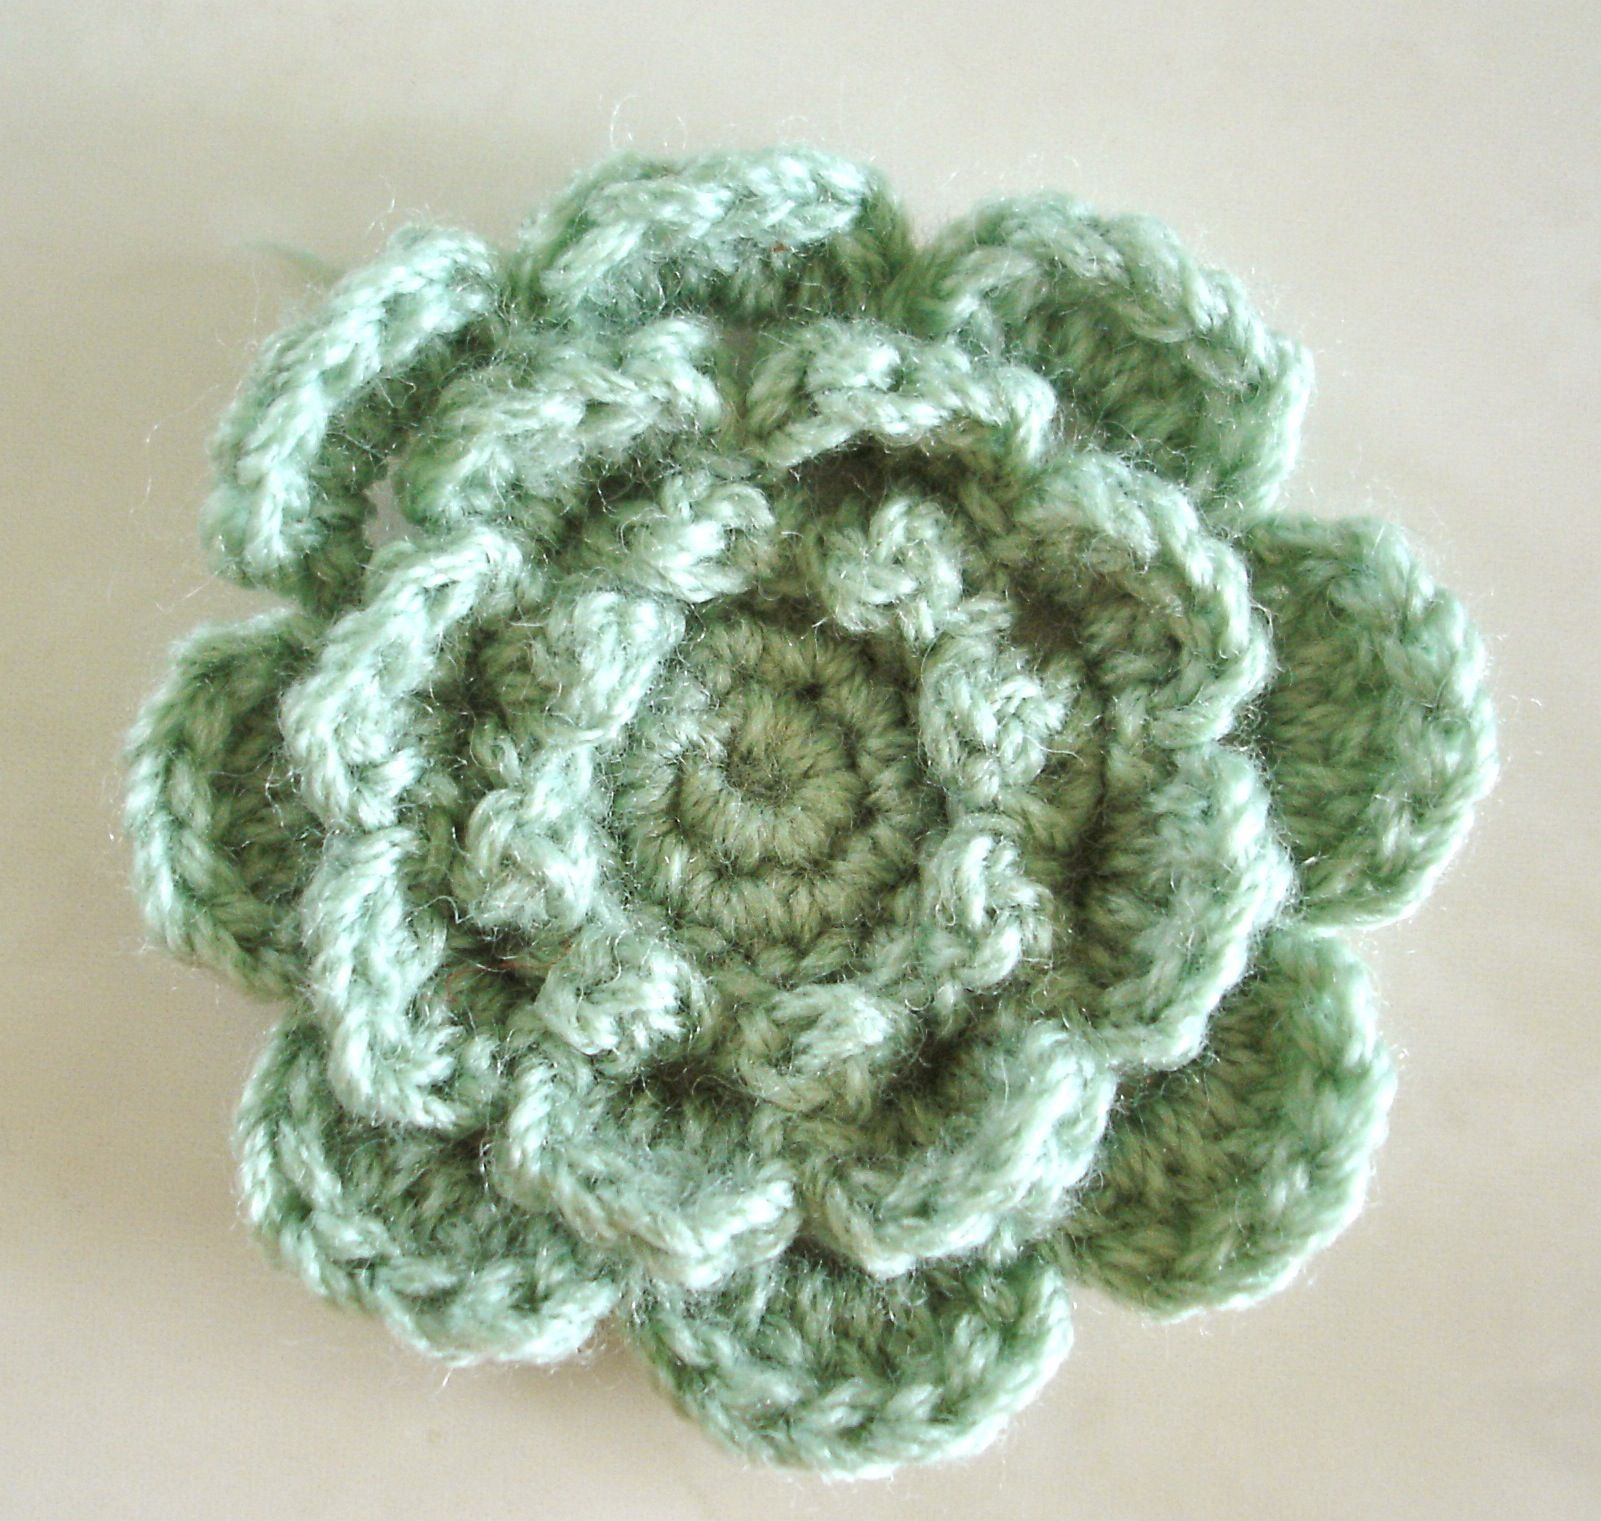 Wicked crochet flower crochet flowers free pattern and crochet wicked crochet flower bankloansurffo Images